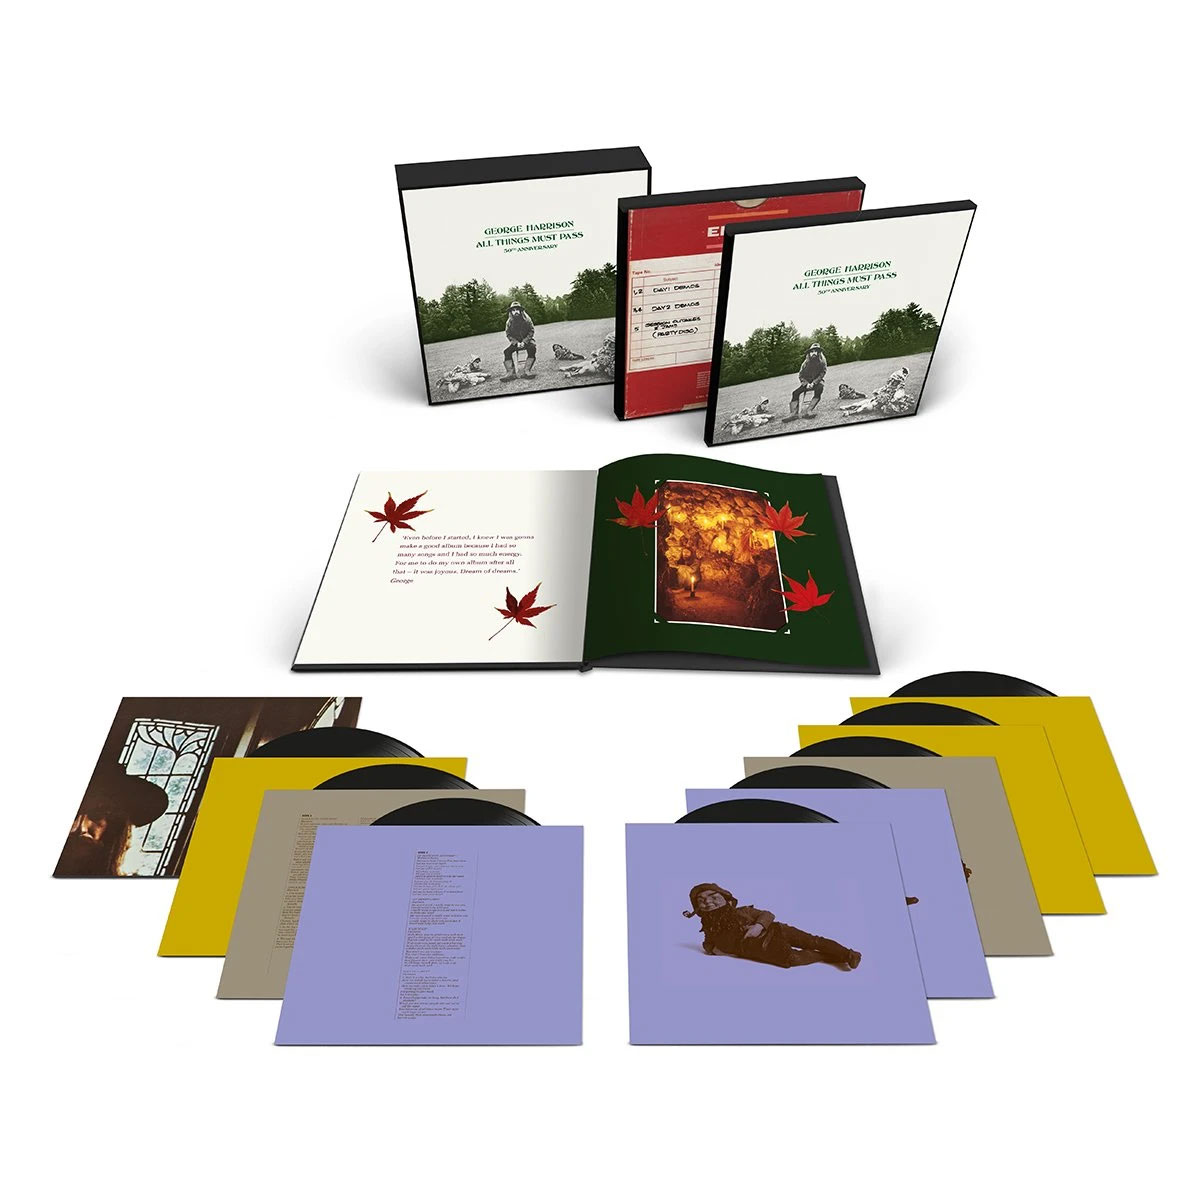 George Harrison All Things Must Pass 180g Super Deluxe 8LP Box Set